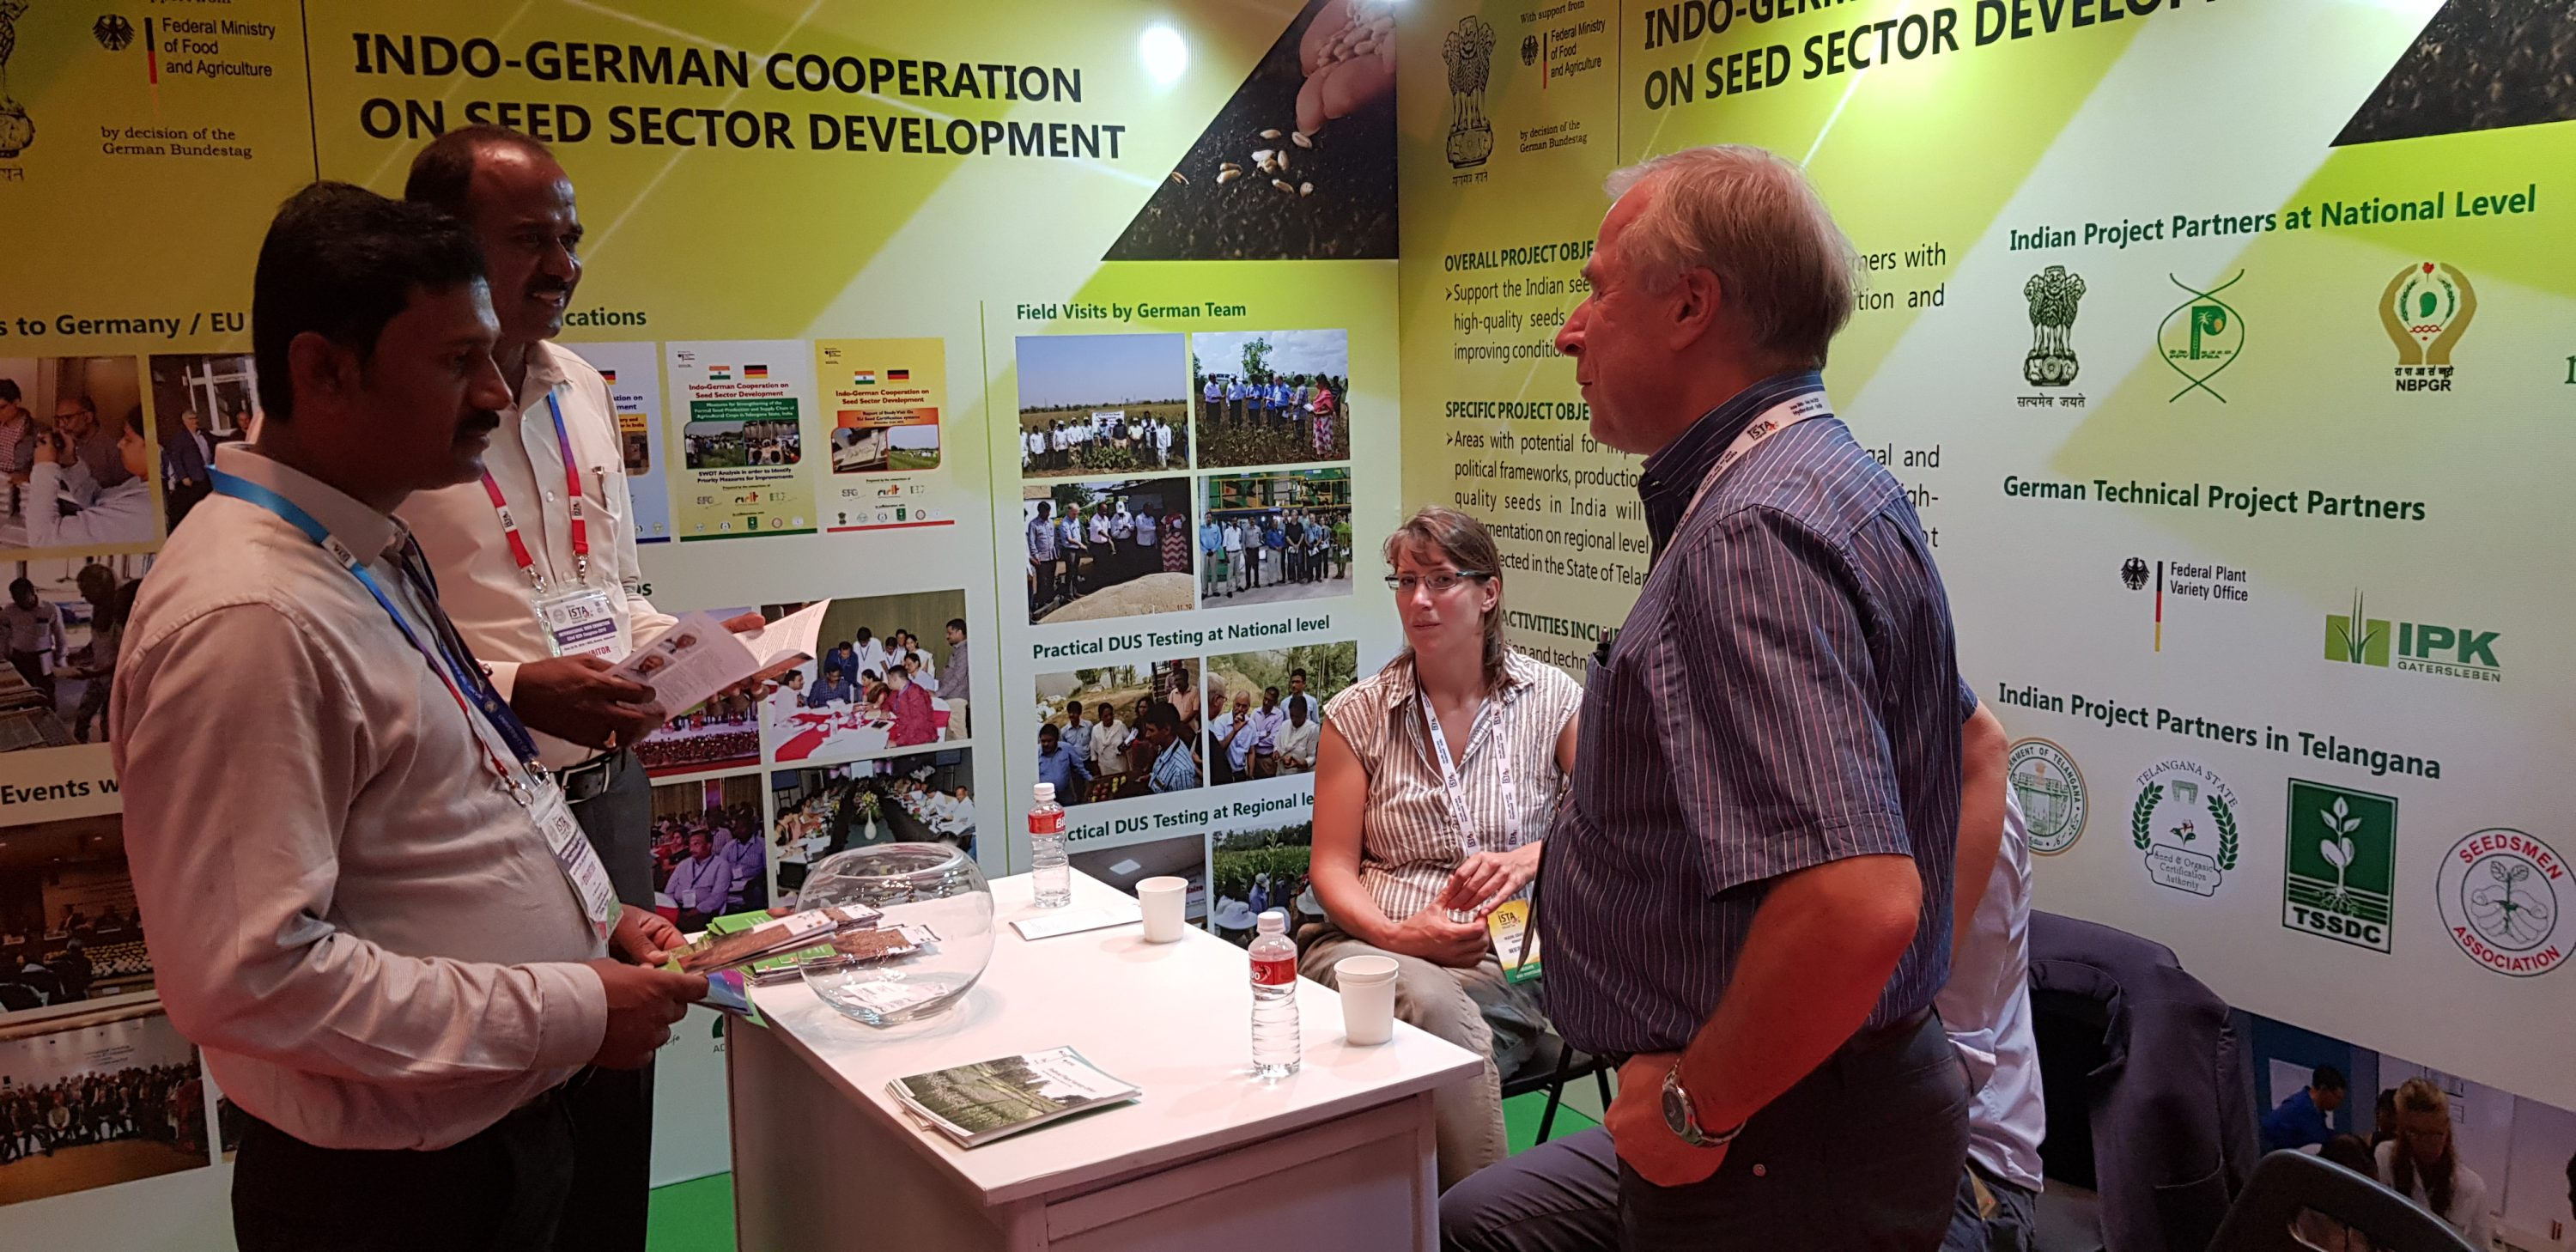 International Seed Exhibition and ISTA Symposium in Hyderabad, India